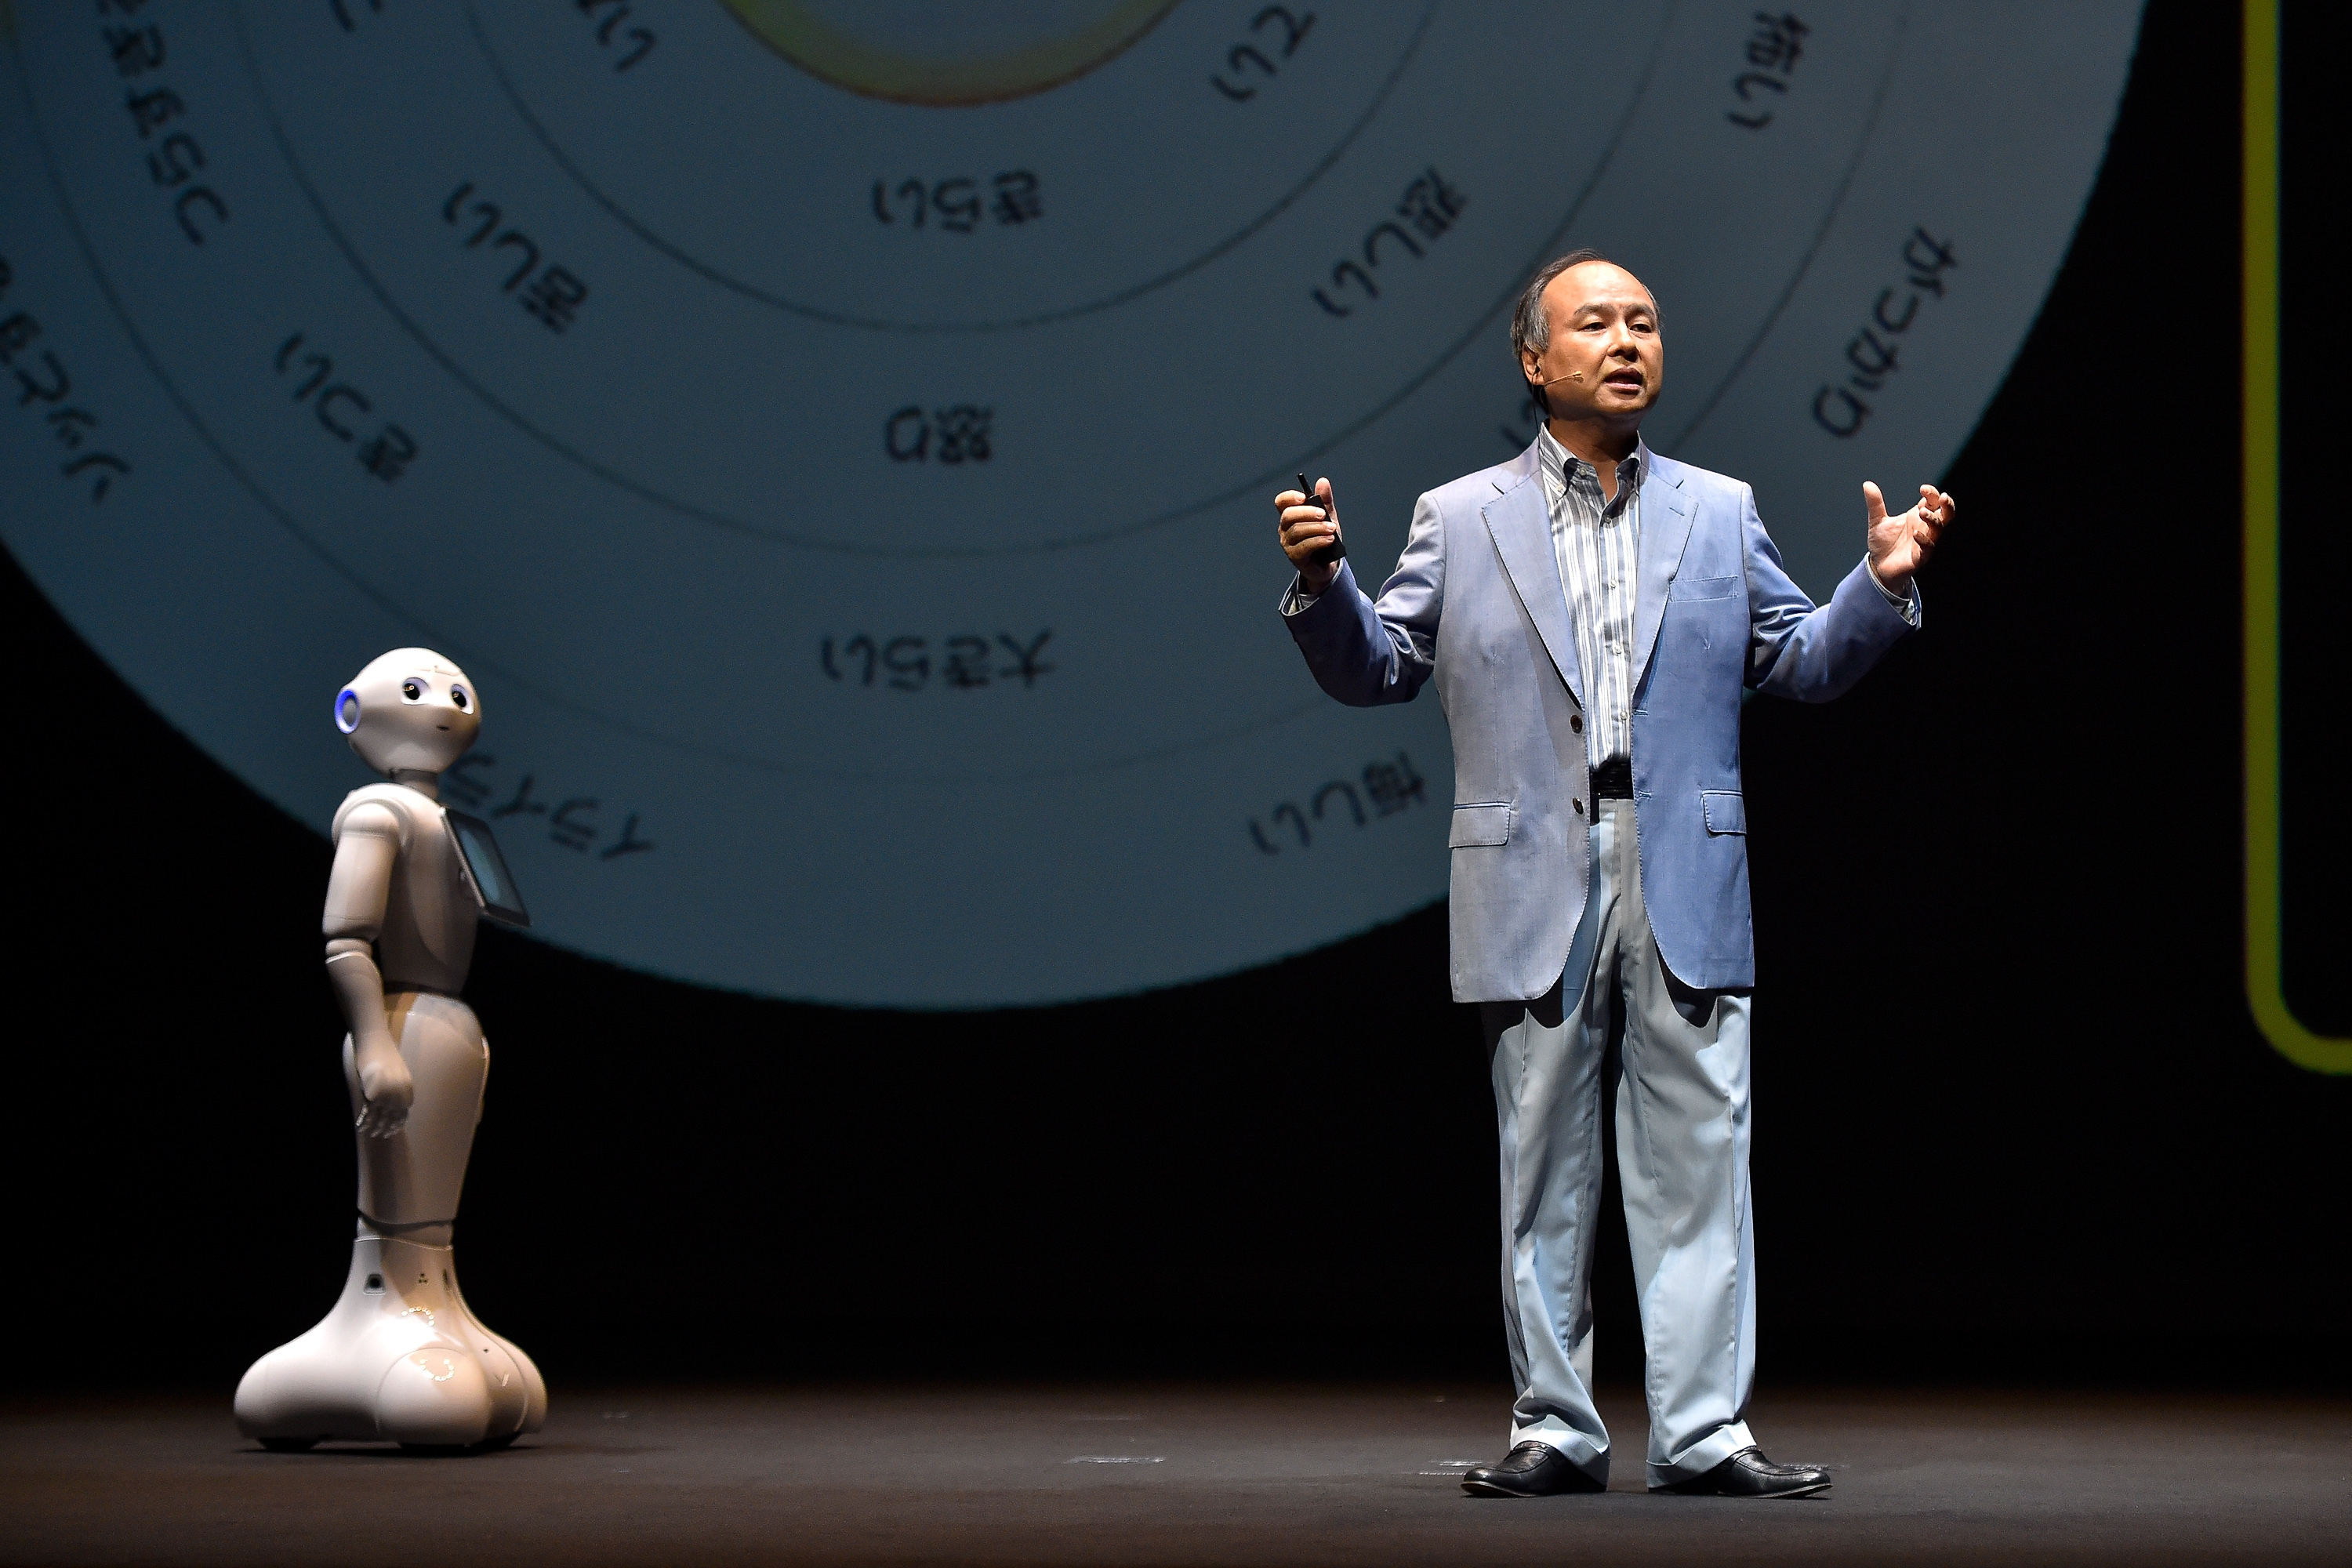 Pepper and Masayoshi Son, Chairman and Chief executive officer of SoftBank Corp talk during the news conference on June 18, 2015 in Chiba, Japan.